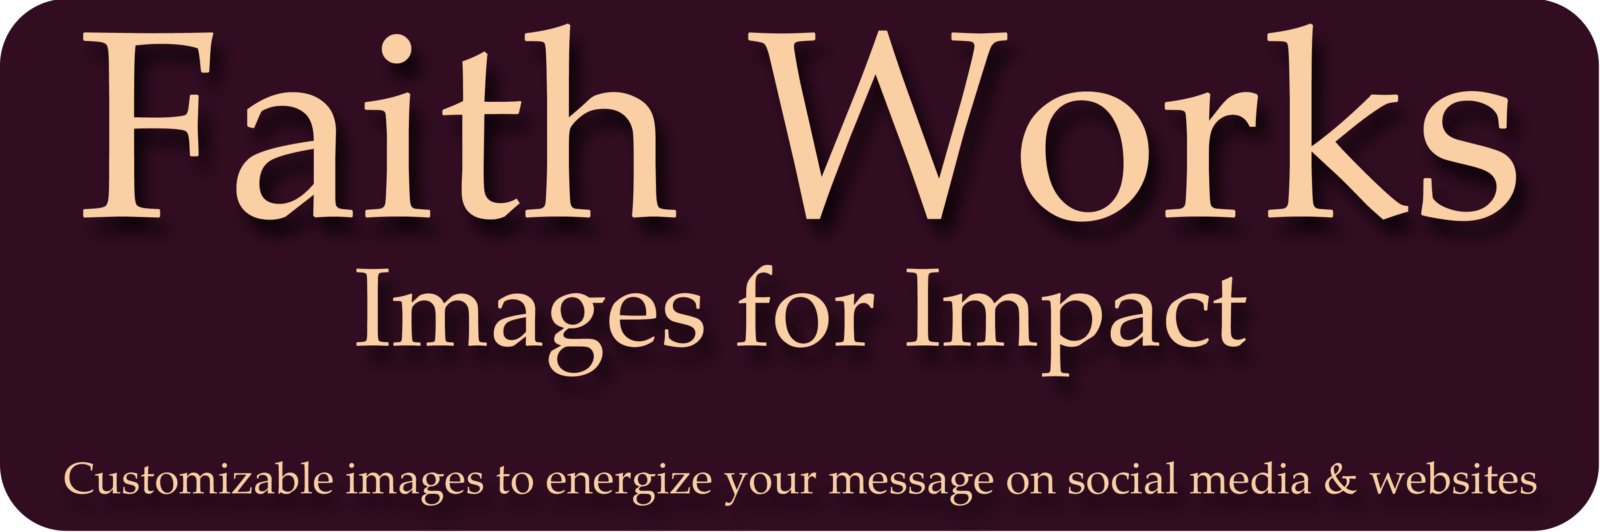 Faith Works Images for Impact - Tuscawilla Creative Services